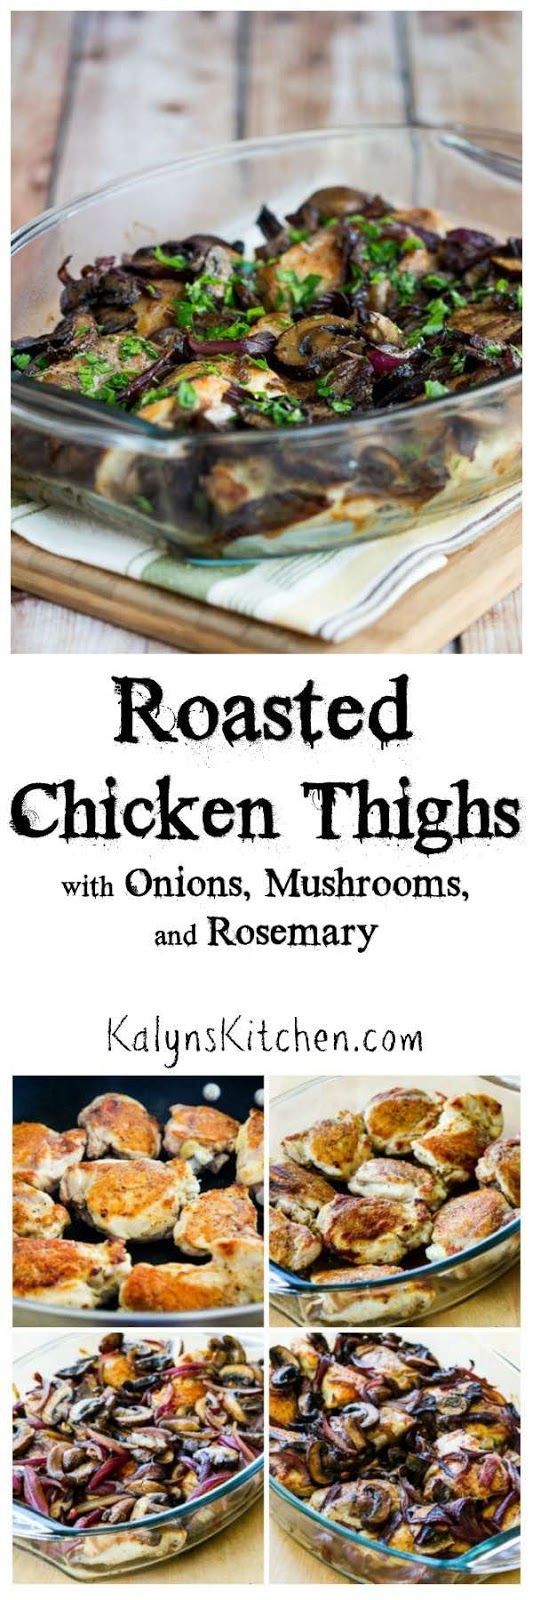 Roasted Chicken Thighs with Mushrooms, Onions, and Rosemary are low-carb, gluten-free, and Paleo, and this chicken is delicious! [found on KalynsKitchen.com]